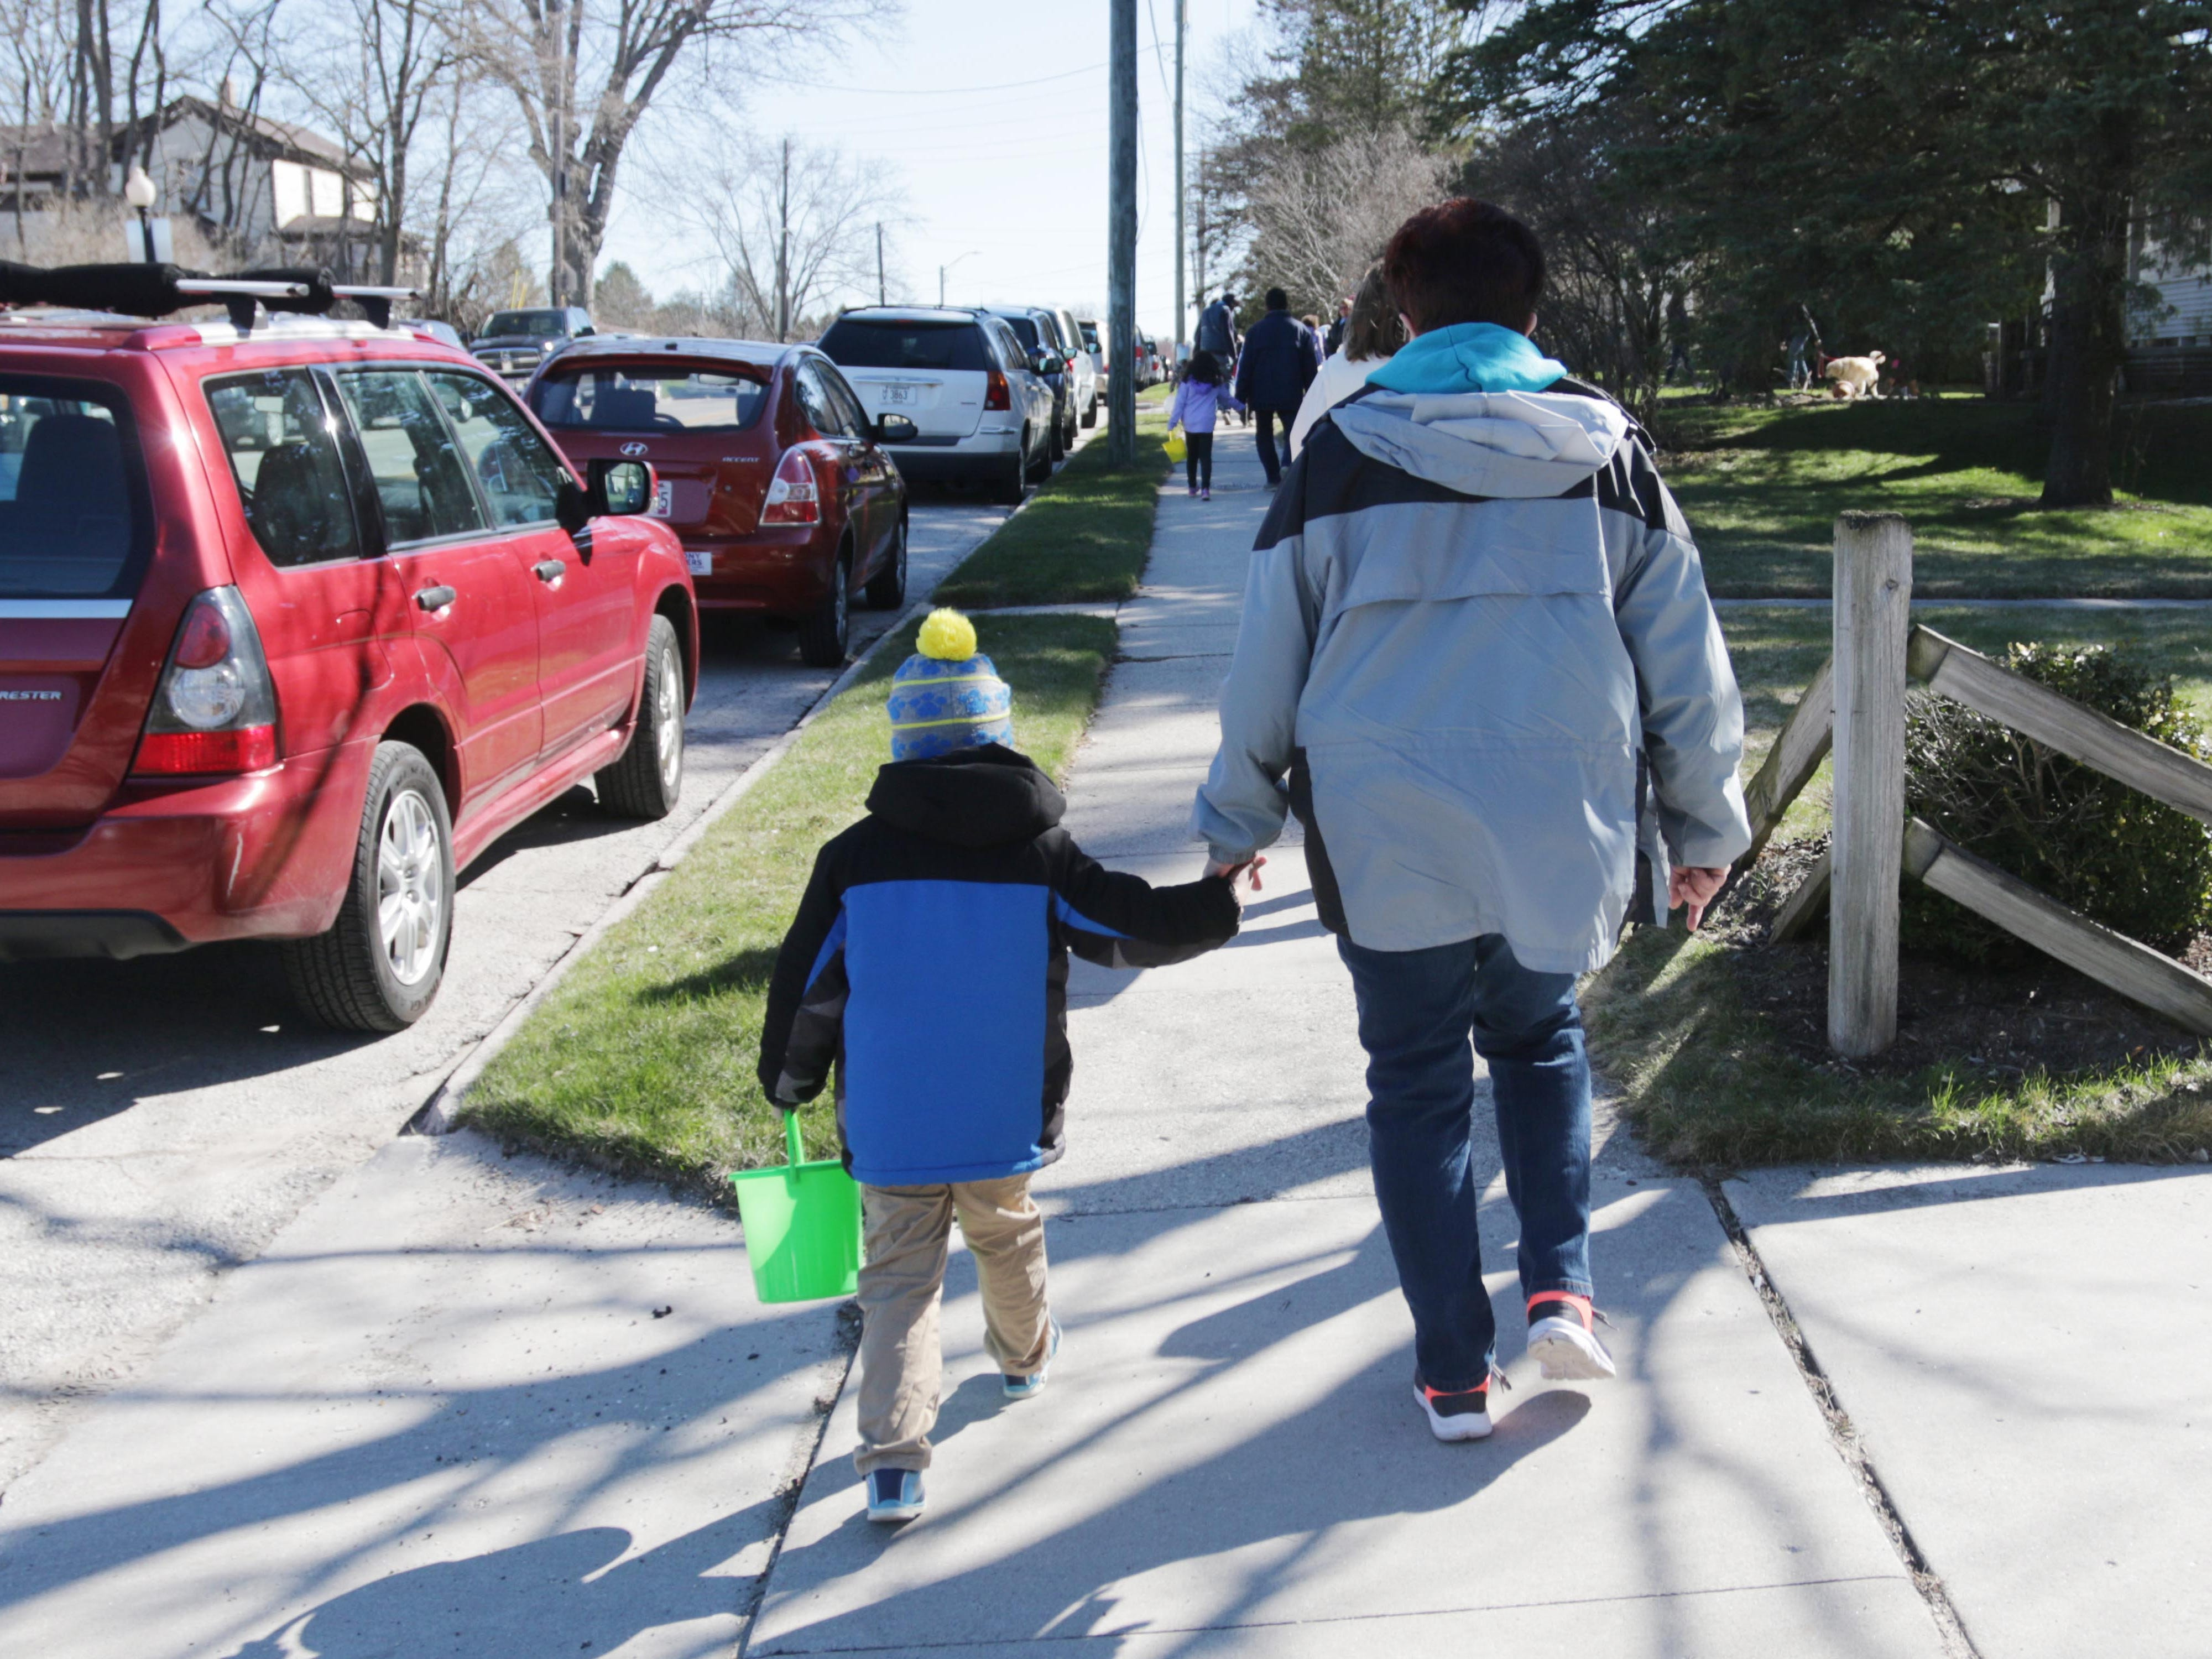 A child and an adult walk to the Hocevar residence to participate in the Hocevar Easter Egg Hunt, Saturday, April 20, 2019, in Sheboygan Falls, Wis.  This years marks 25 years for the Hocevar Family holding an Easter egg hunt at their home, according to Kathy Hocevar.